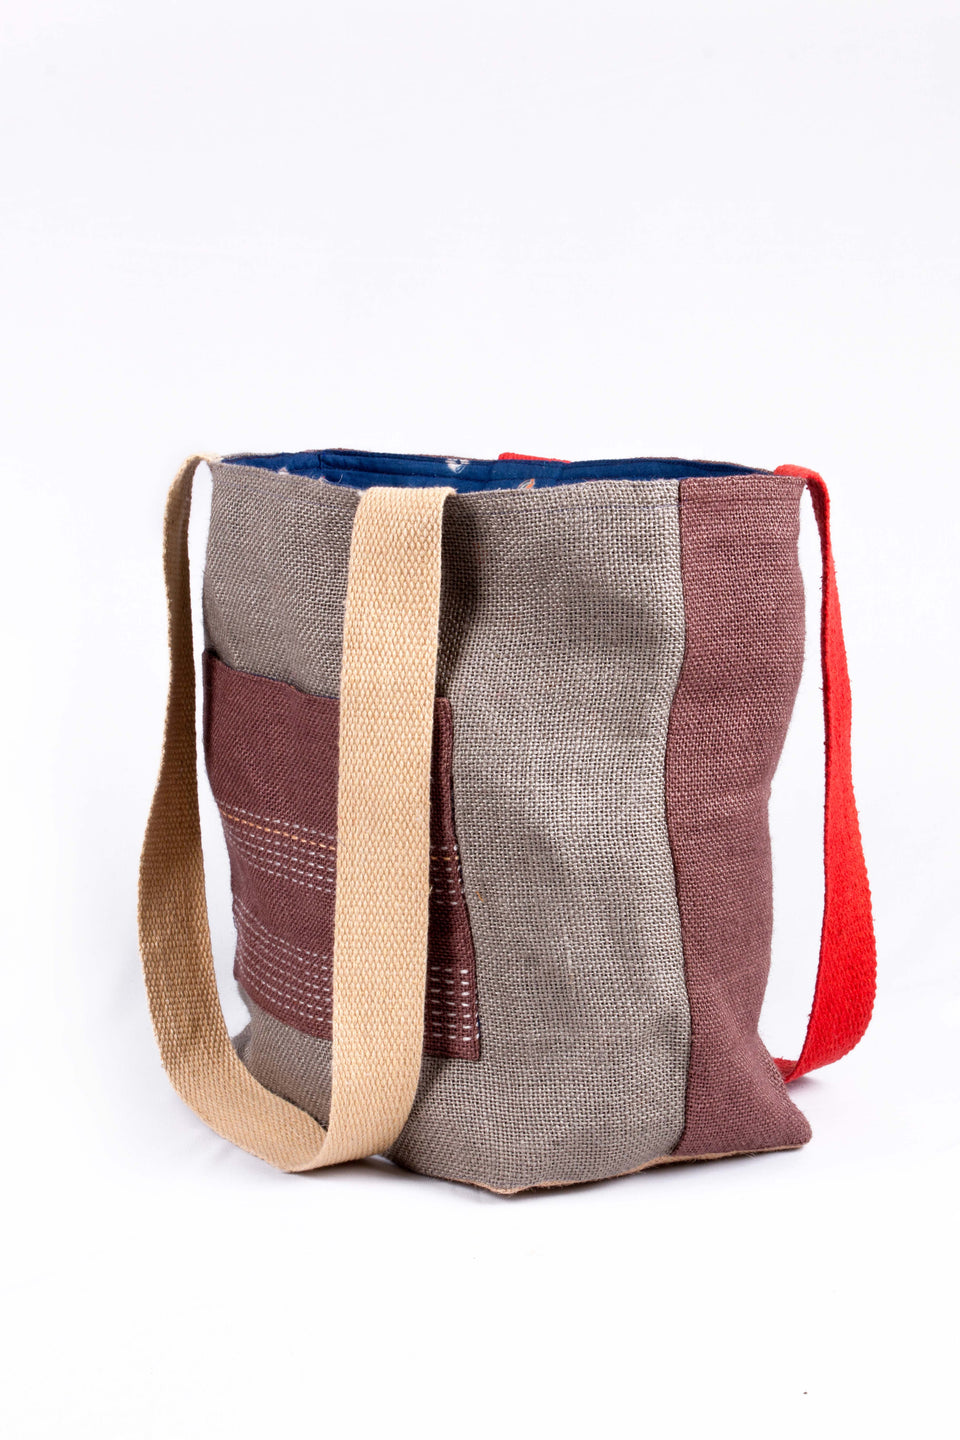 Reversible Tote in Grey and Brown